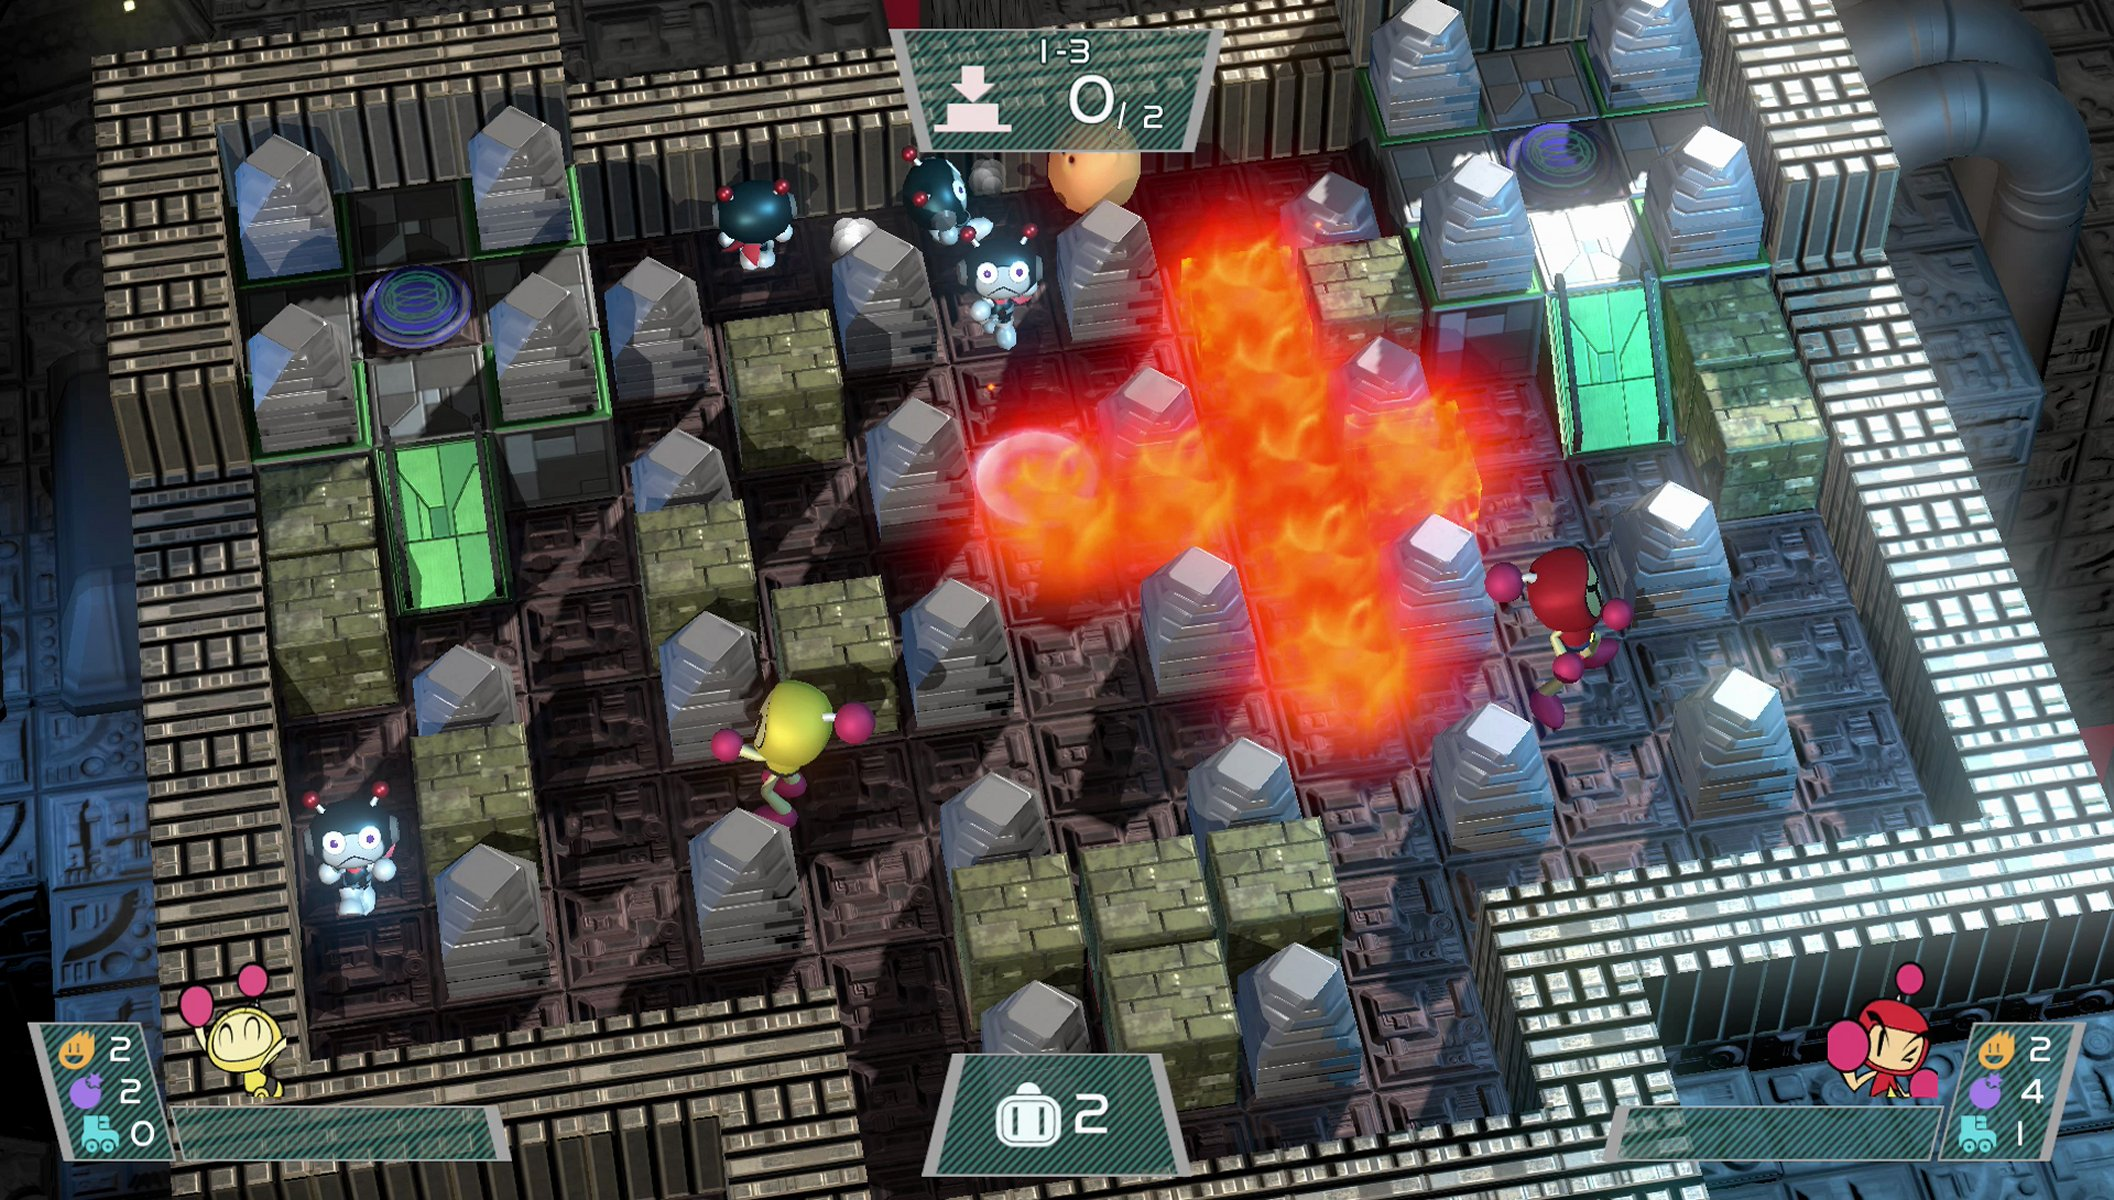 Super Bomberman R - Nintendo Switch Screenshots (1)